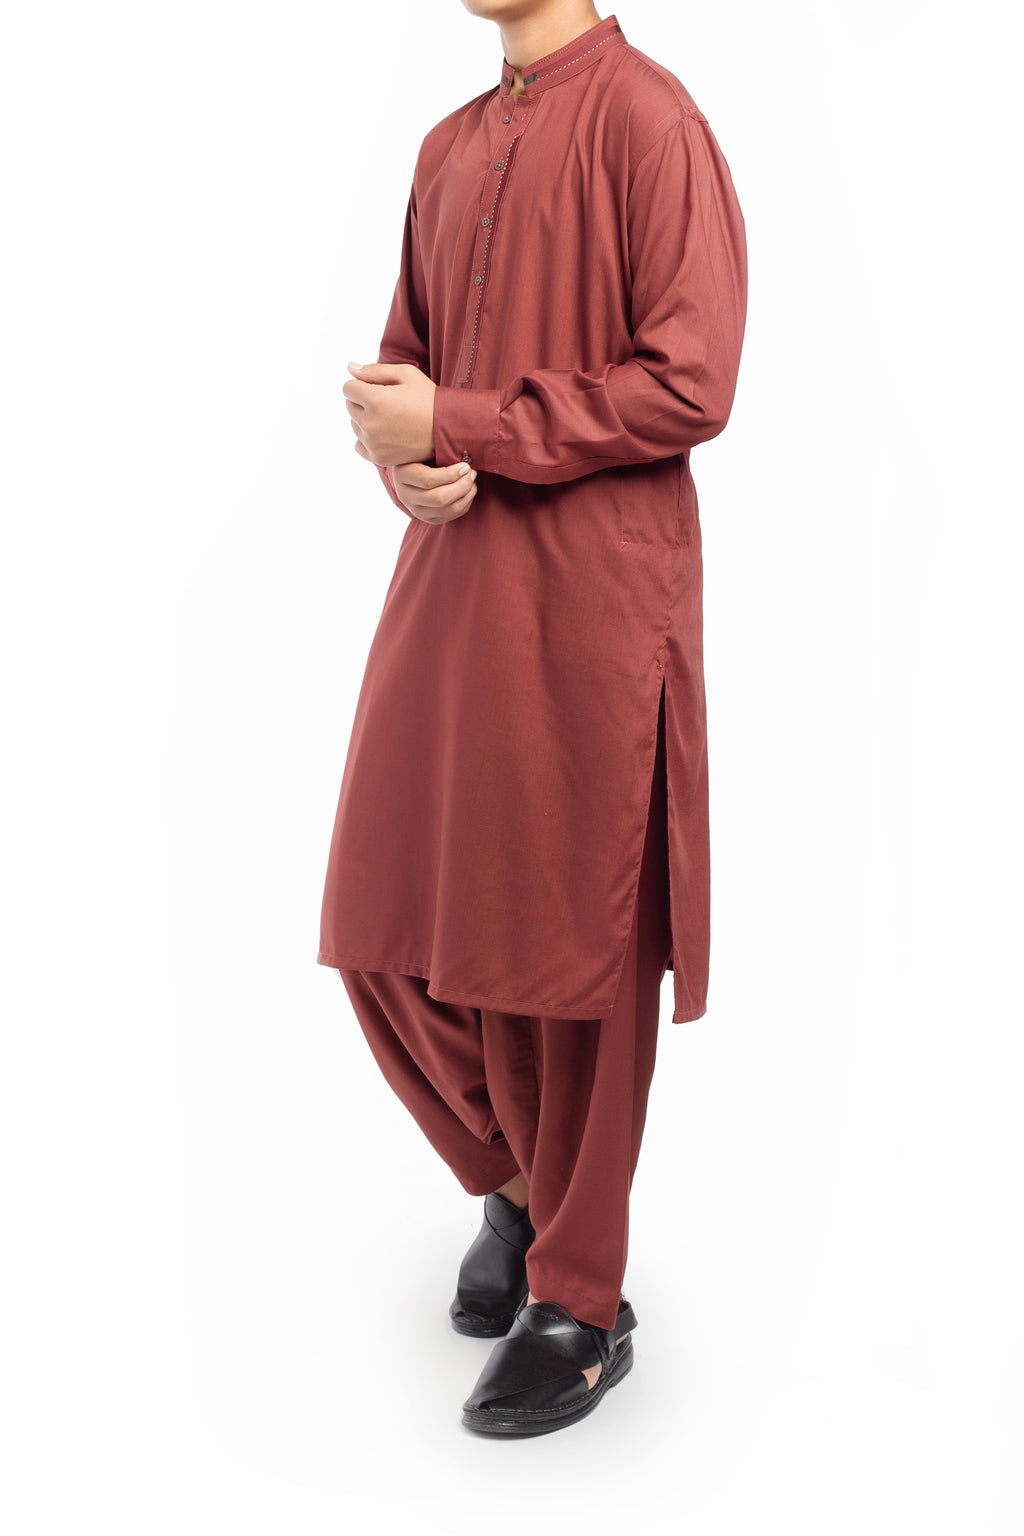 Brick Red Shalwar Qameez BQ-39514